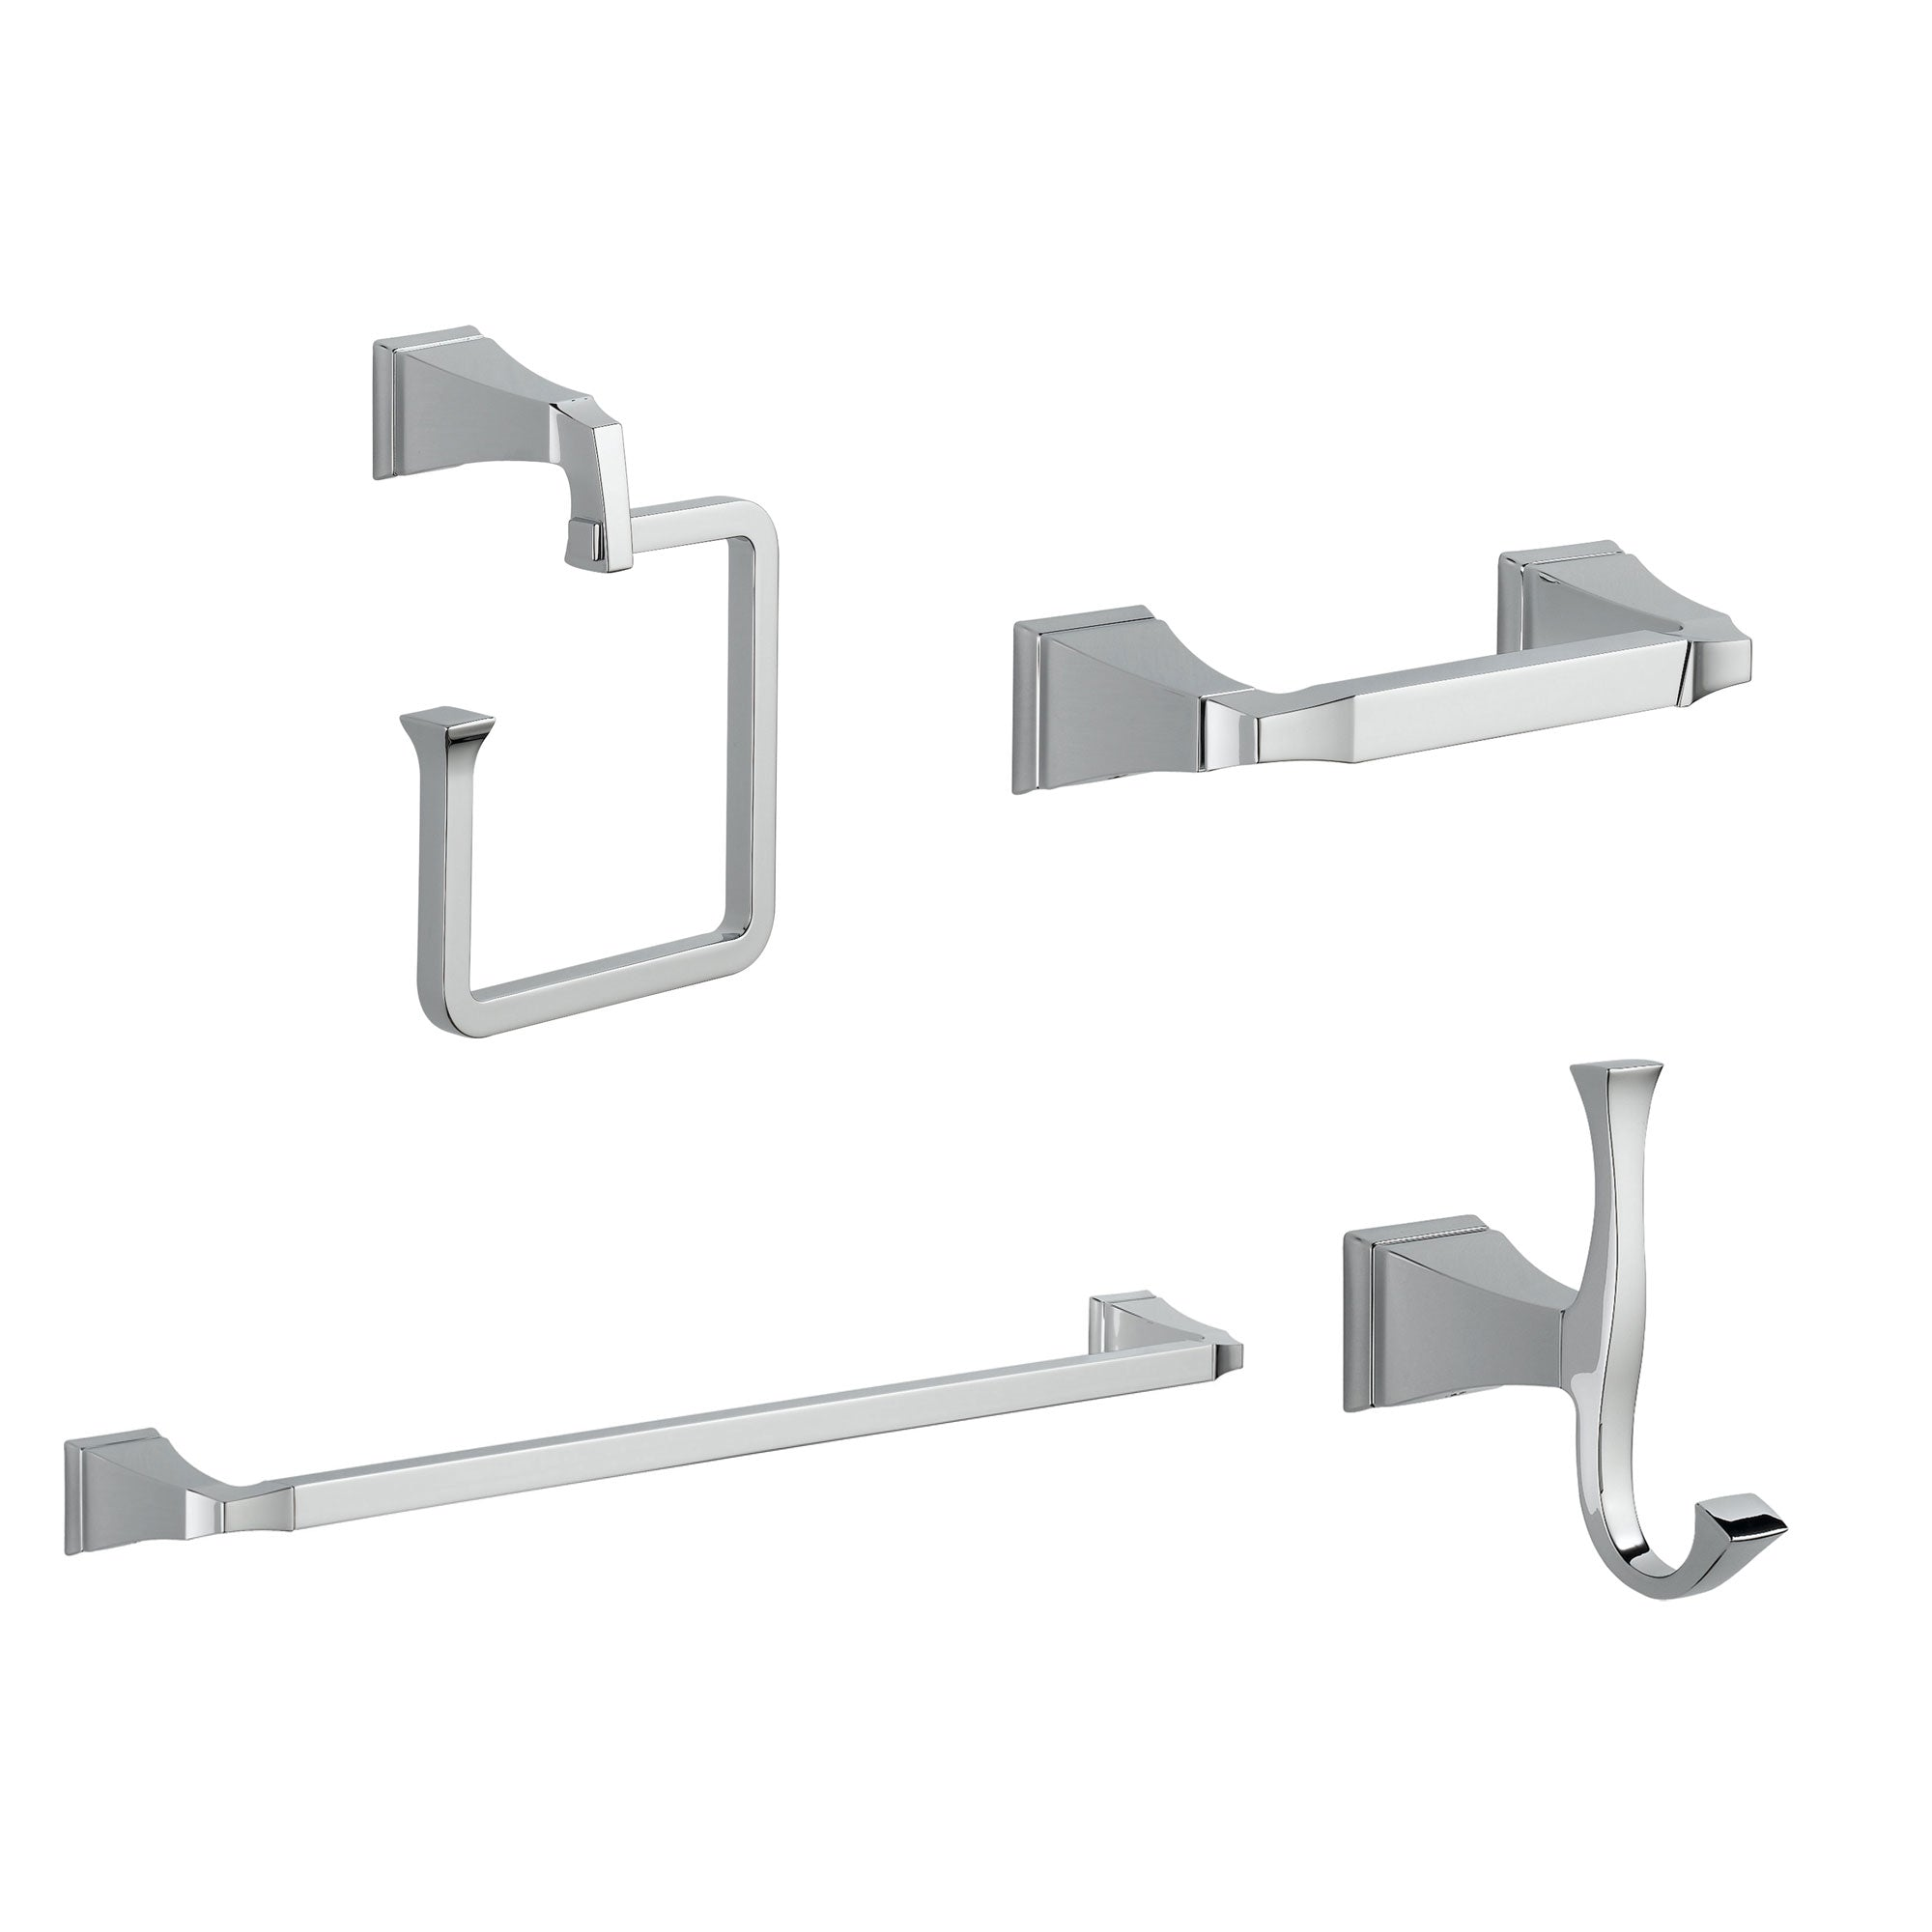 "Delta Dryden Chrome STANDARD Bathroom Accessory Set Includes: 24"" Towel Bar, Toilet Paper Holder, Robe Hook, and Towel Ring D10032AP"